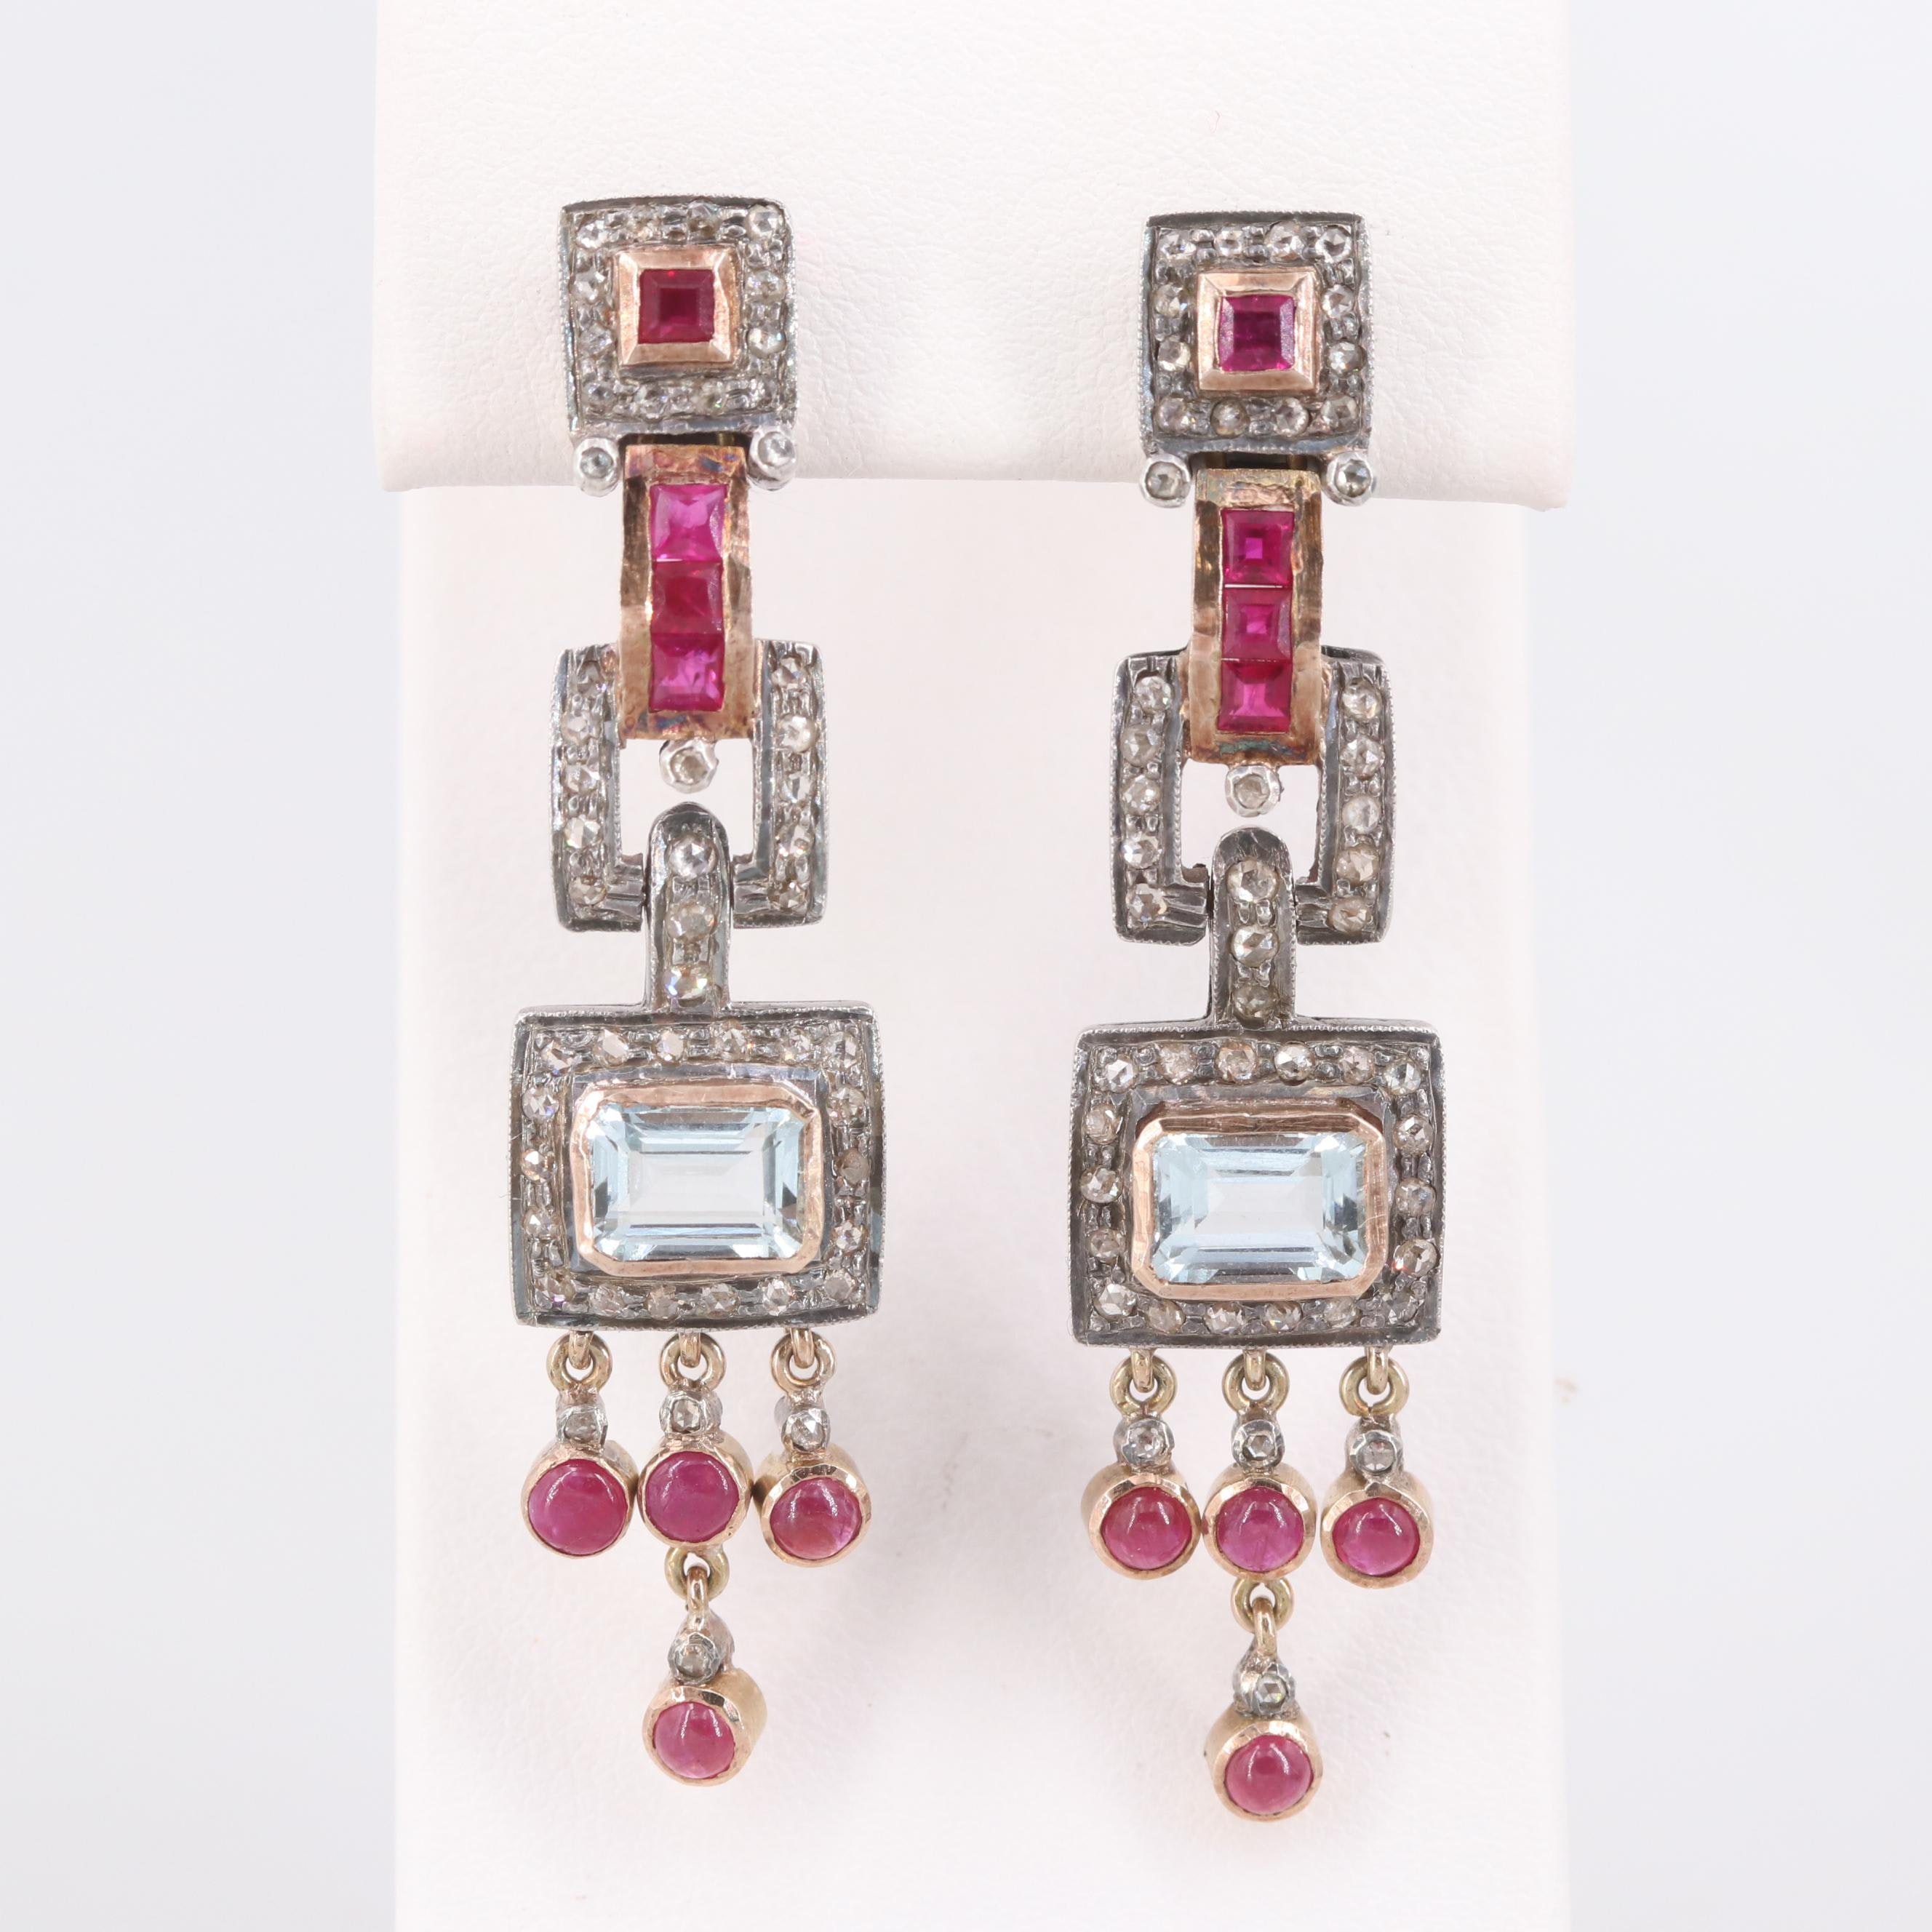 800 Silver Aquamarine, Ruby and Diamond Earrings with 14K Yellow Gold Accents